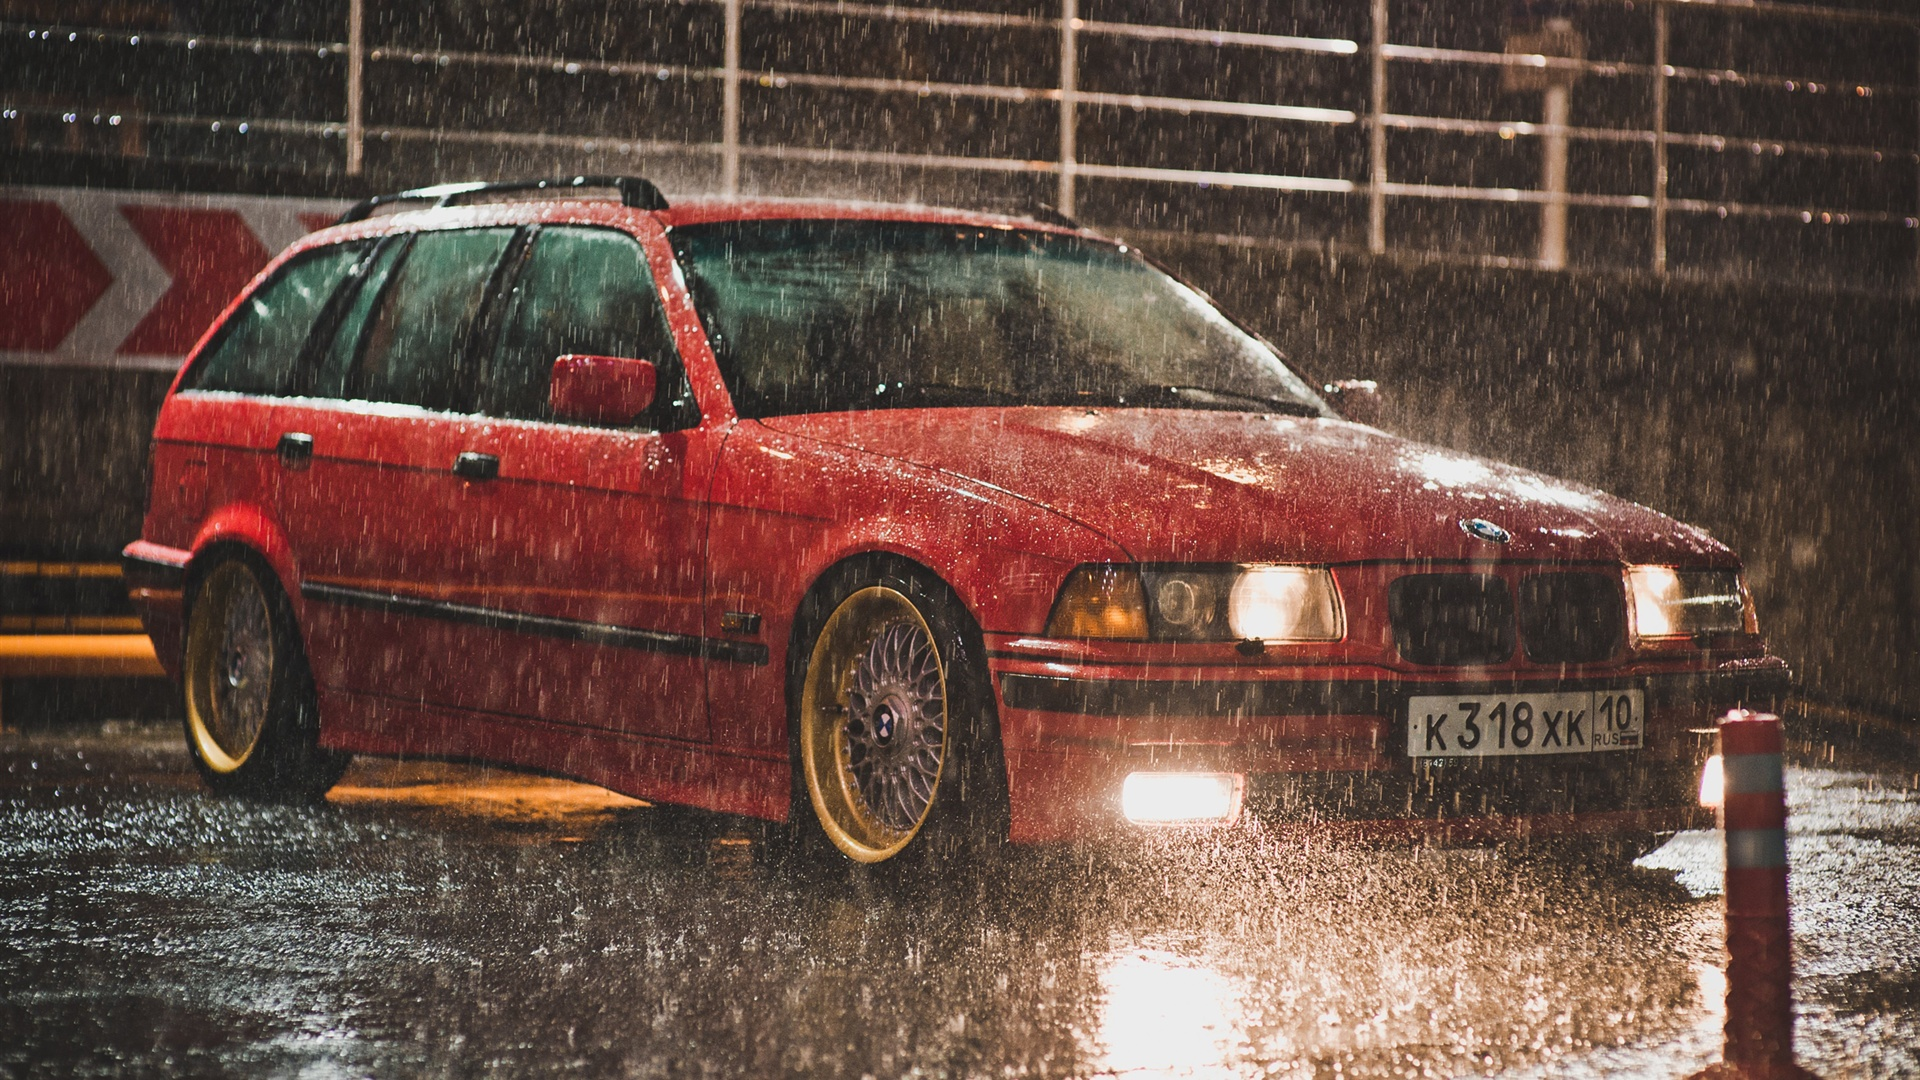 Wallpaper Bmw E36 Touring Red Color Raining Night 2560x1600 Hd Picture Image